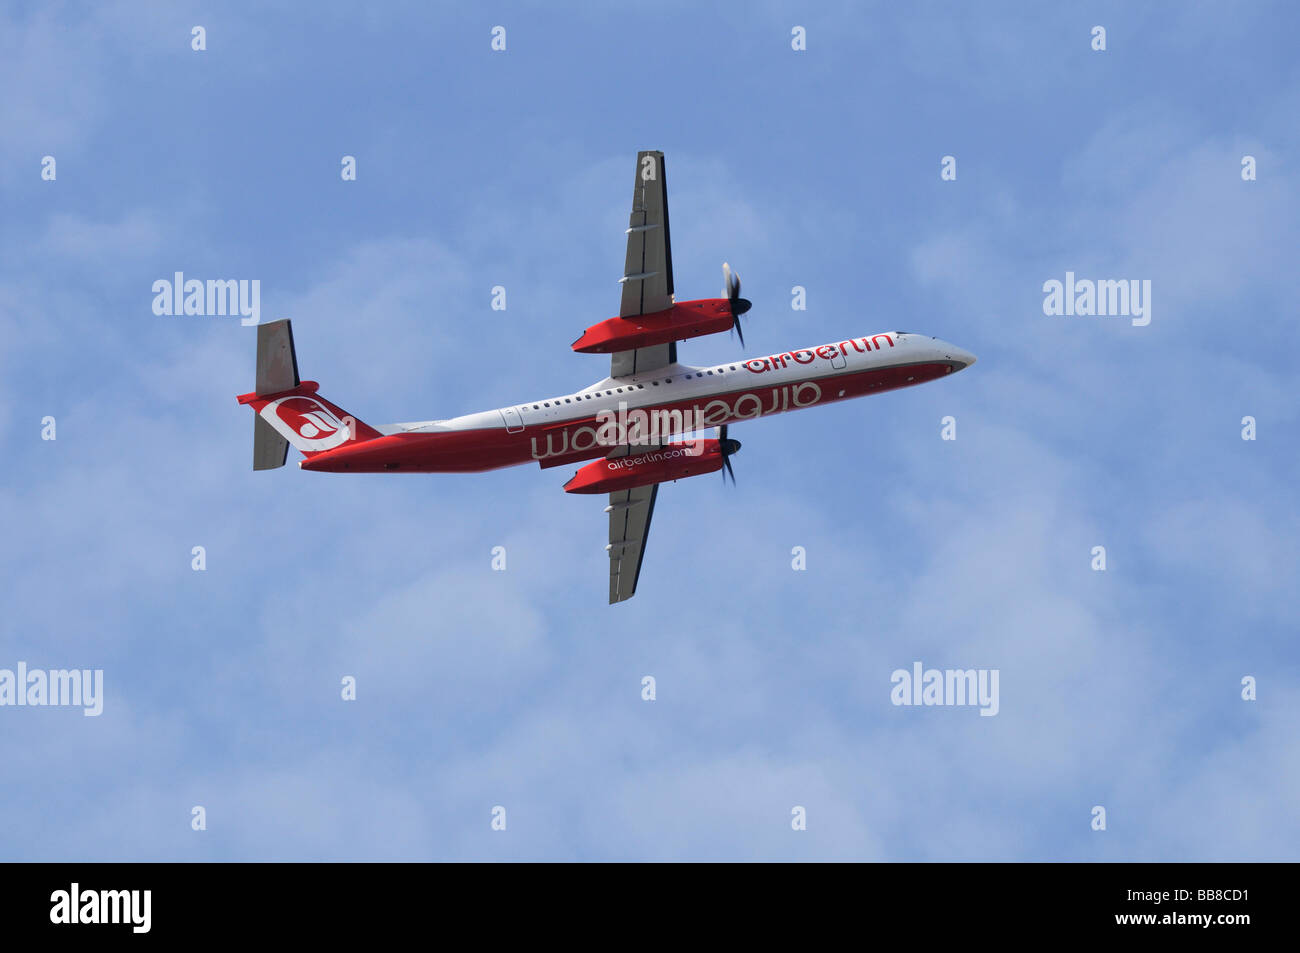 Airberlin Bombardier Q 400 twin-engined, medium range, turboprop airplane, ascending seen from below - Stock Image